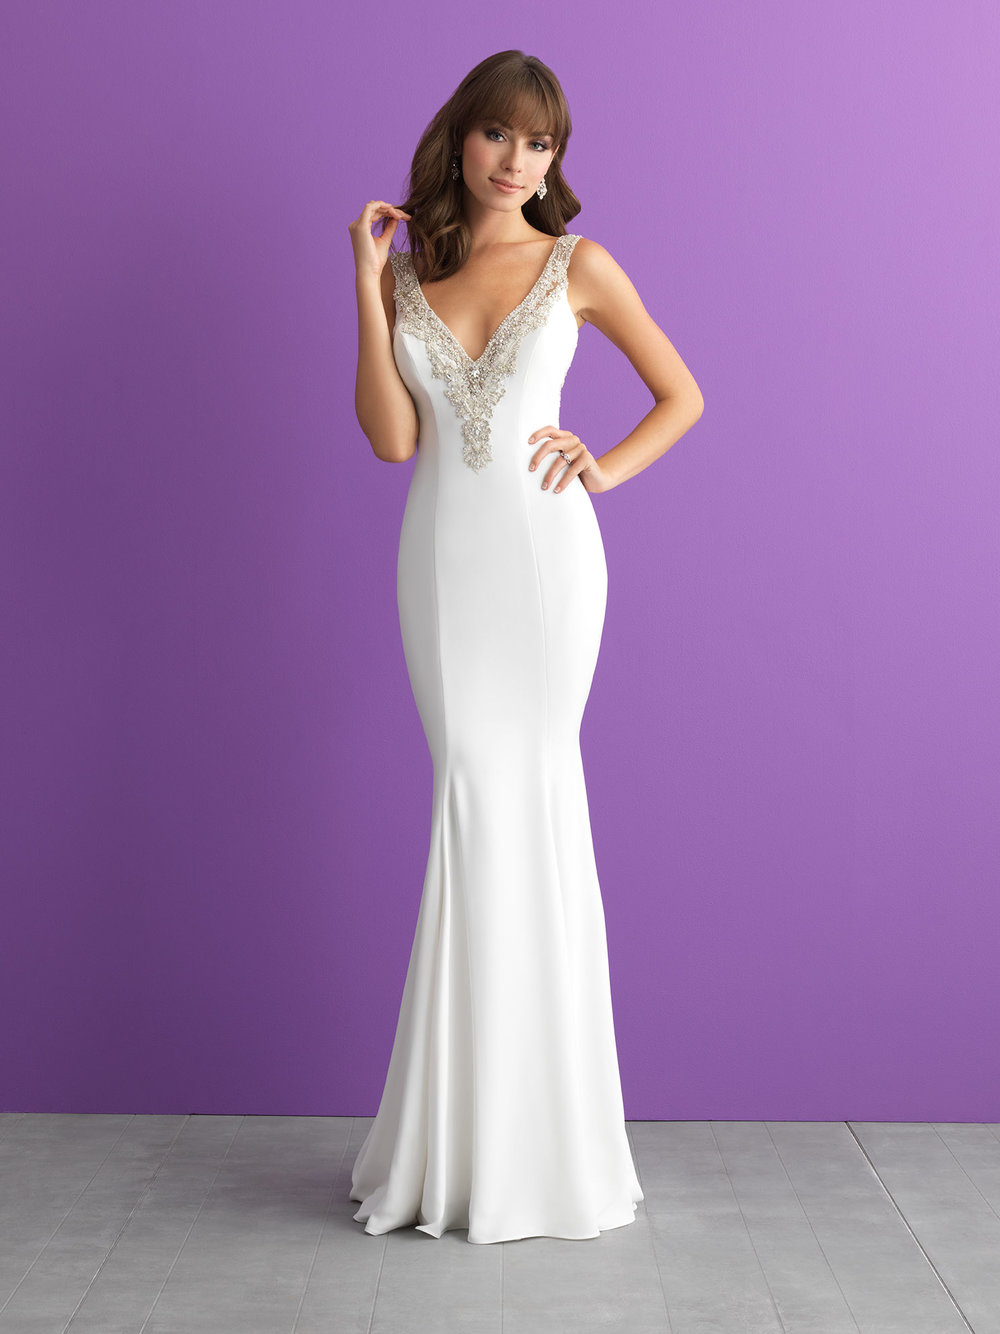 Style 3013 - Softly clinging fabric is paired with an eye-catching neckline and open back in this truly glamorous look.